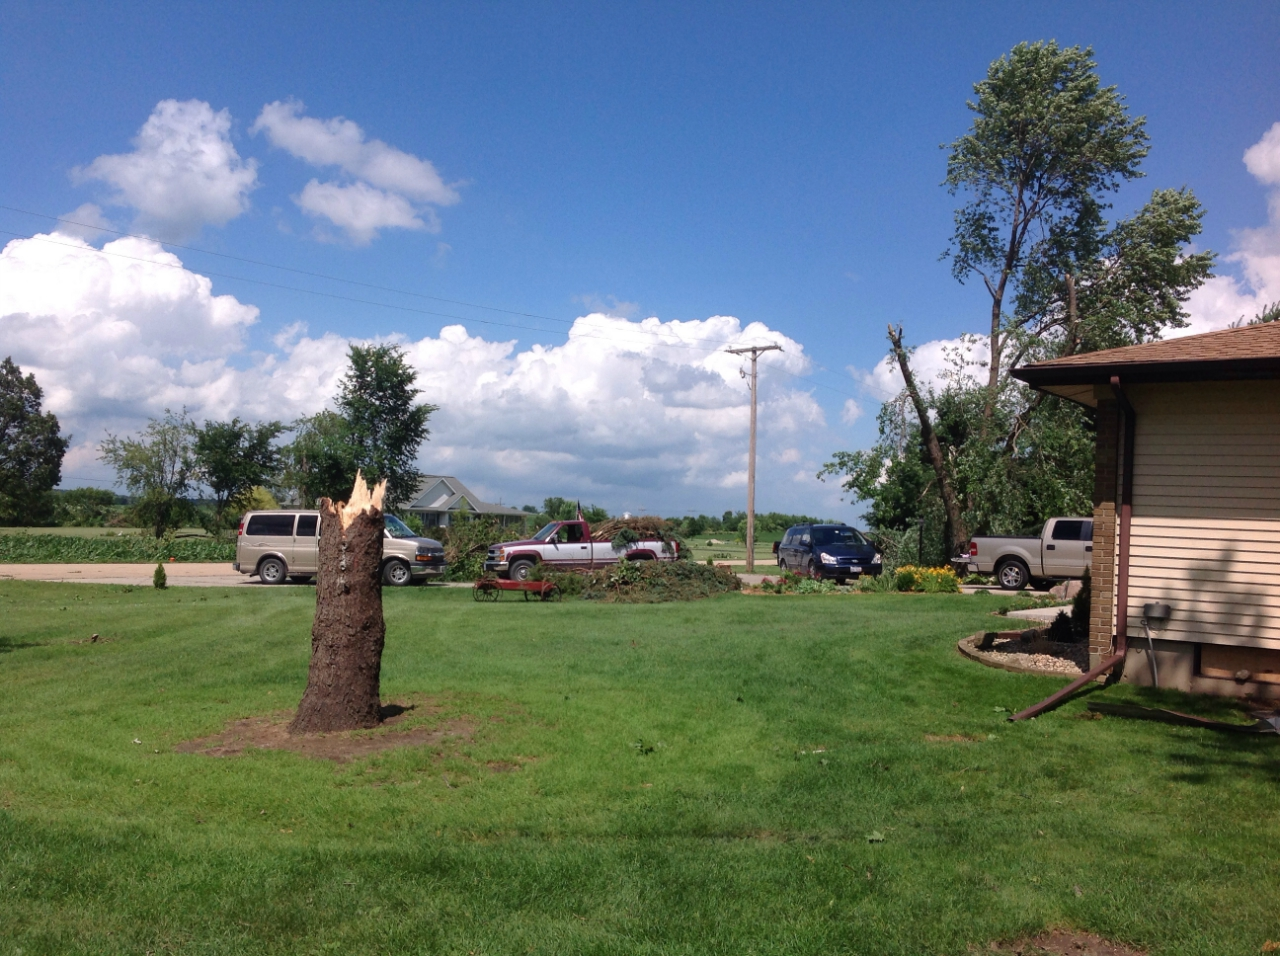 Tree damage 1 mile ENE Earlville